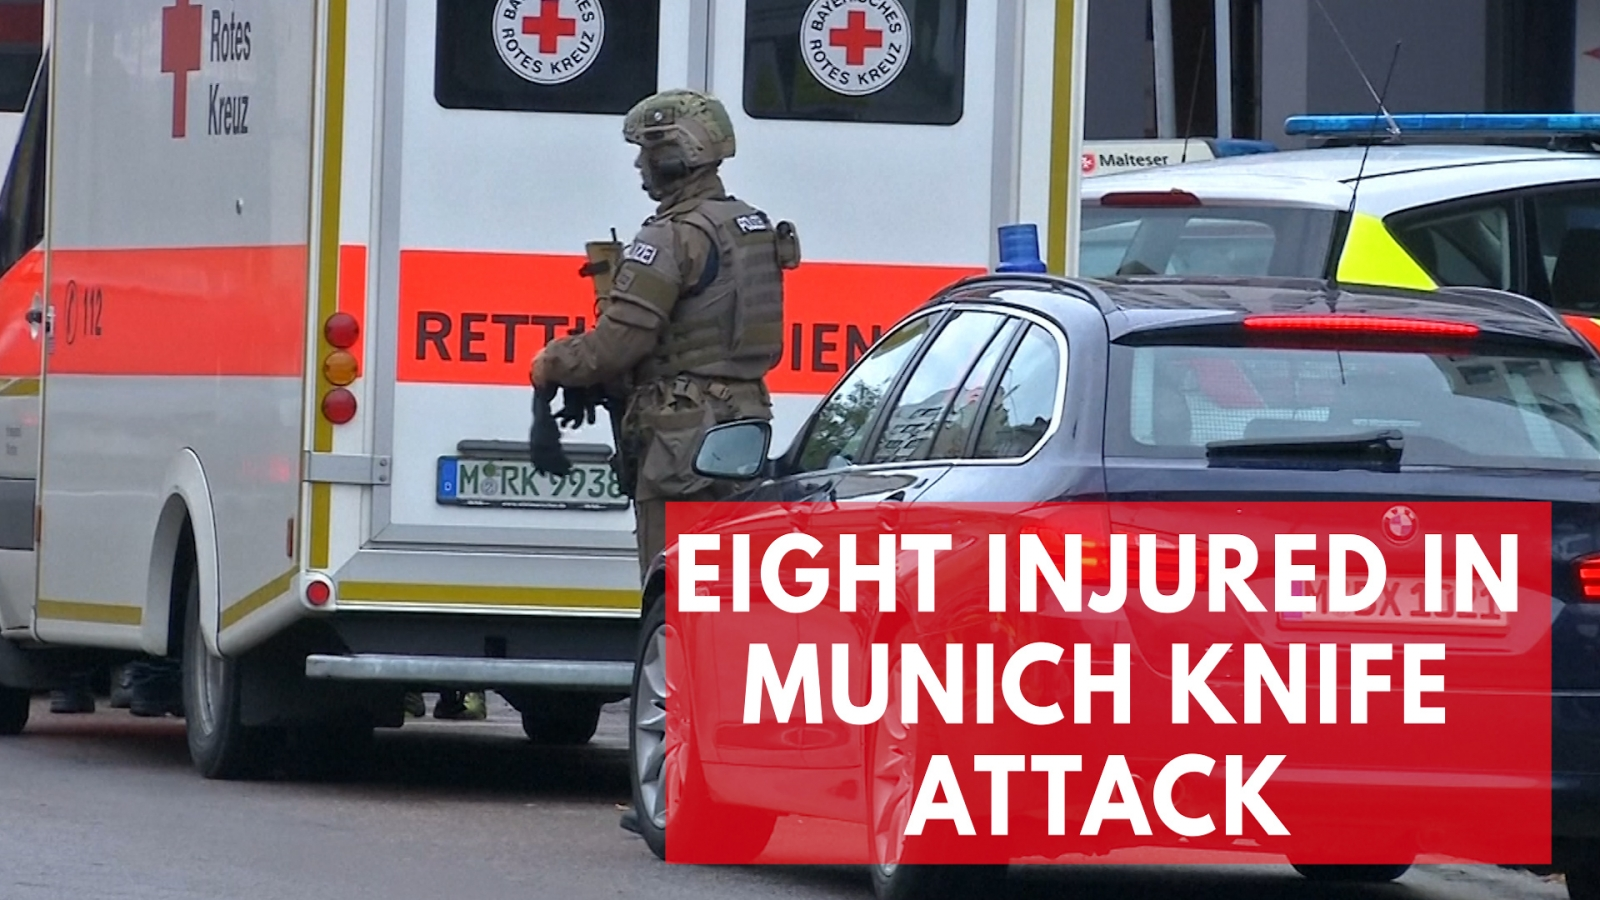 suspect-arrested-after-eight-injured-in-munich-knife-attack